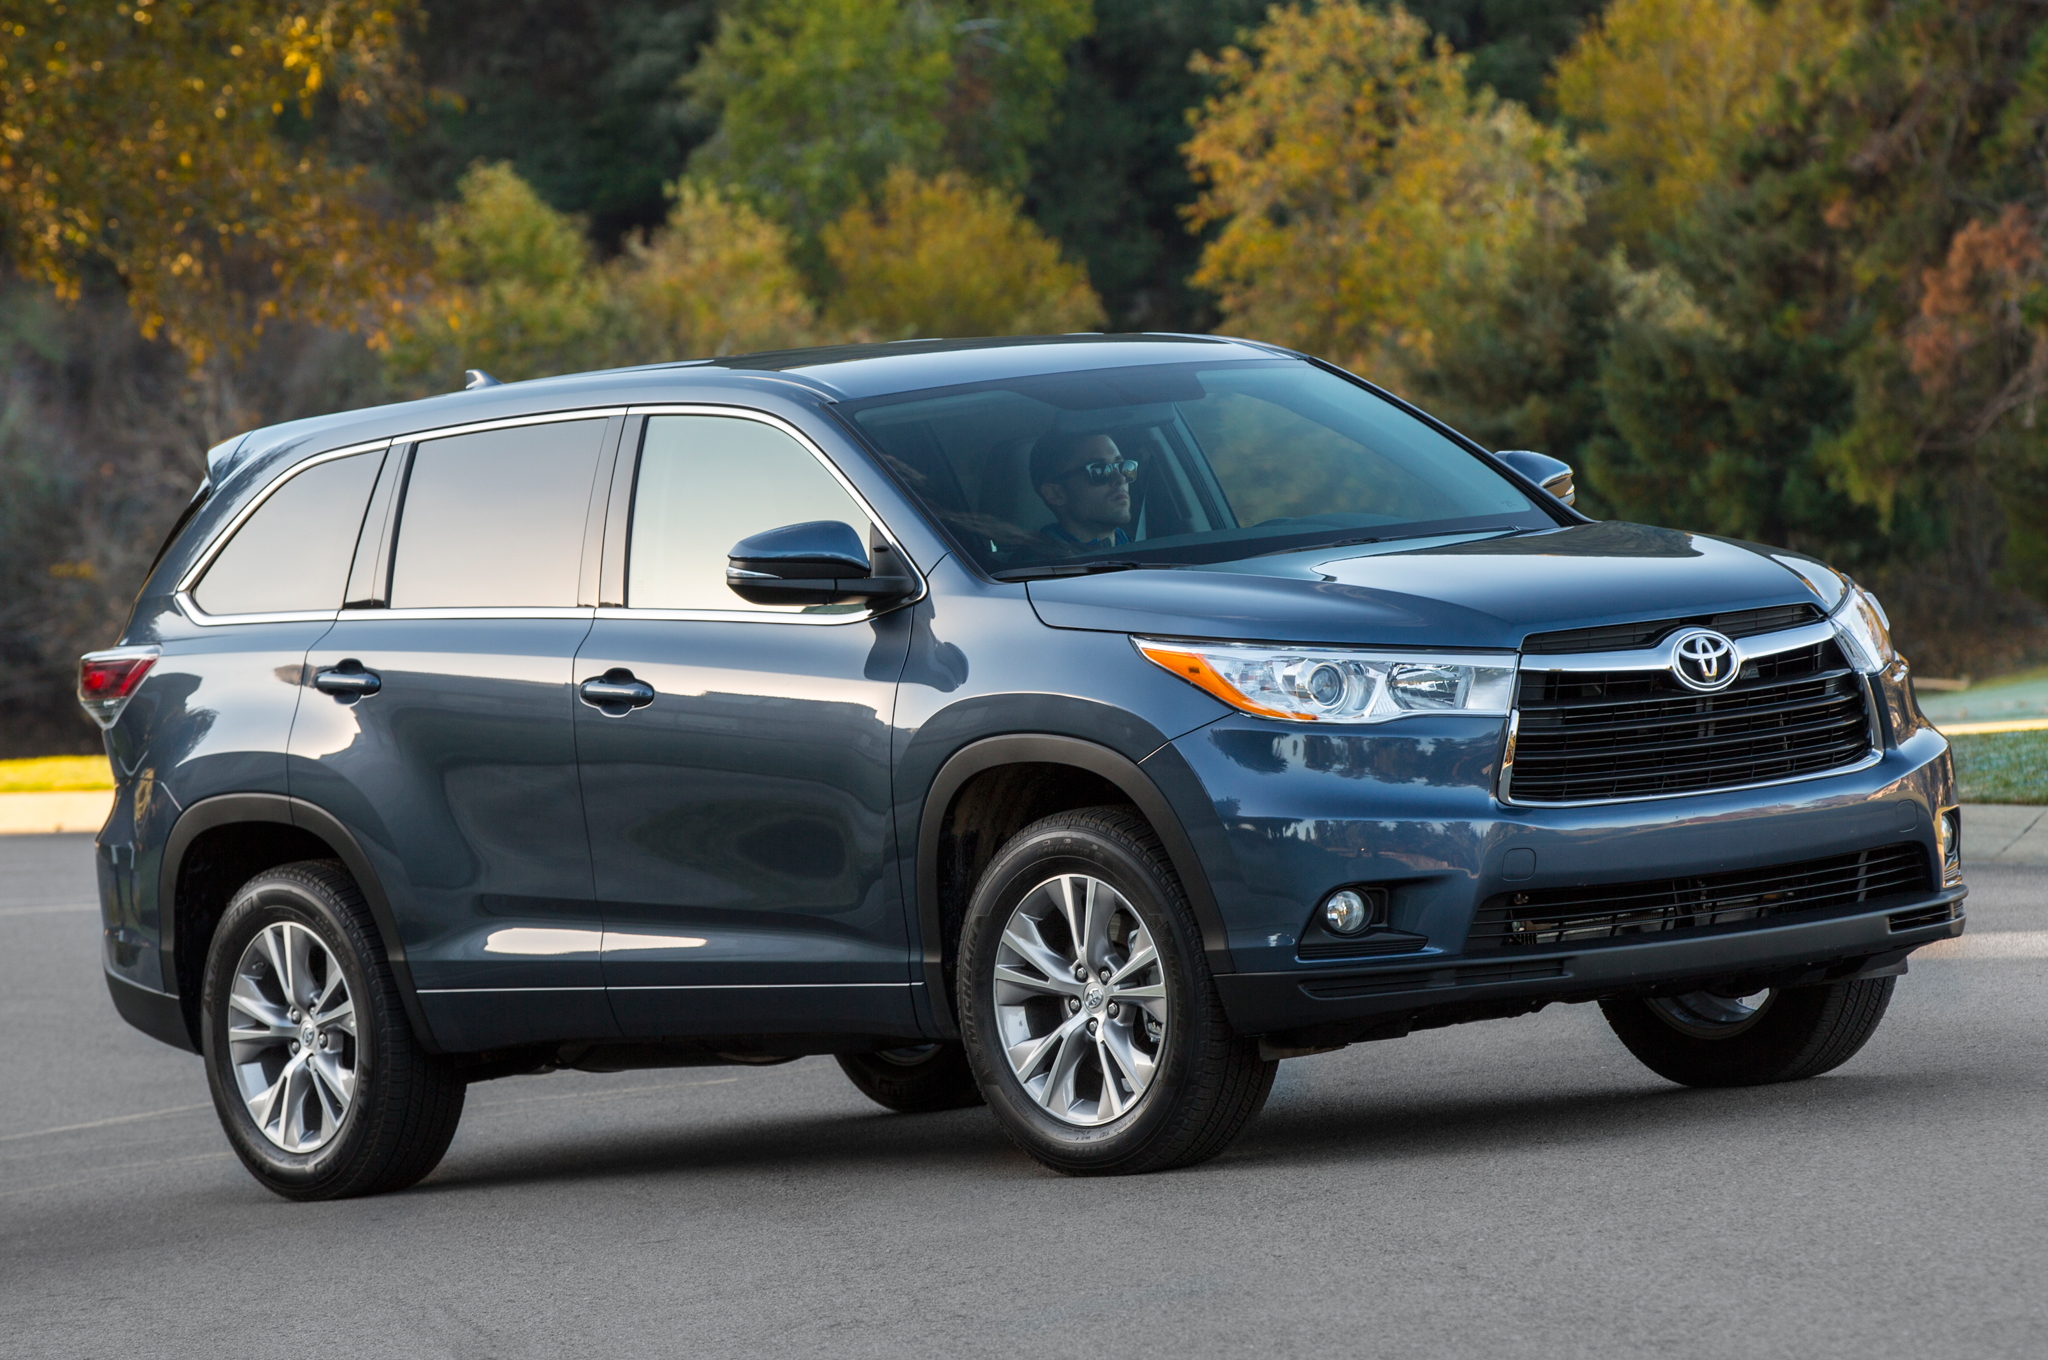 2014 Toyota Highlander Fuse Diagram List Of Schematic Circuit 2013 Box Location Recalled For Problem With Seat Belt Motor Trend Rh Motortrend Com Wiring